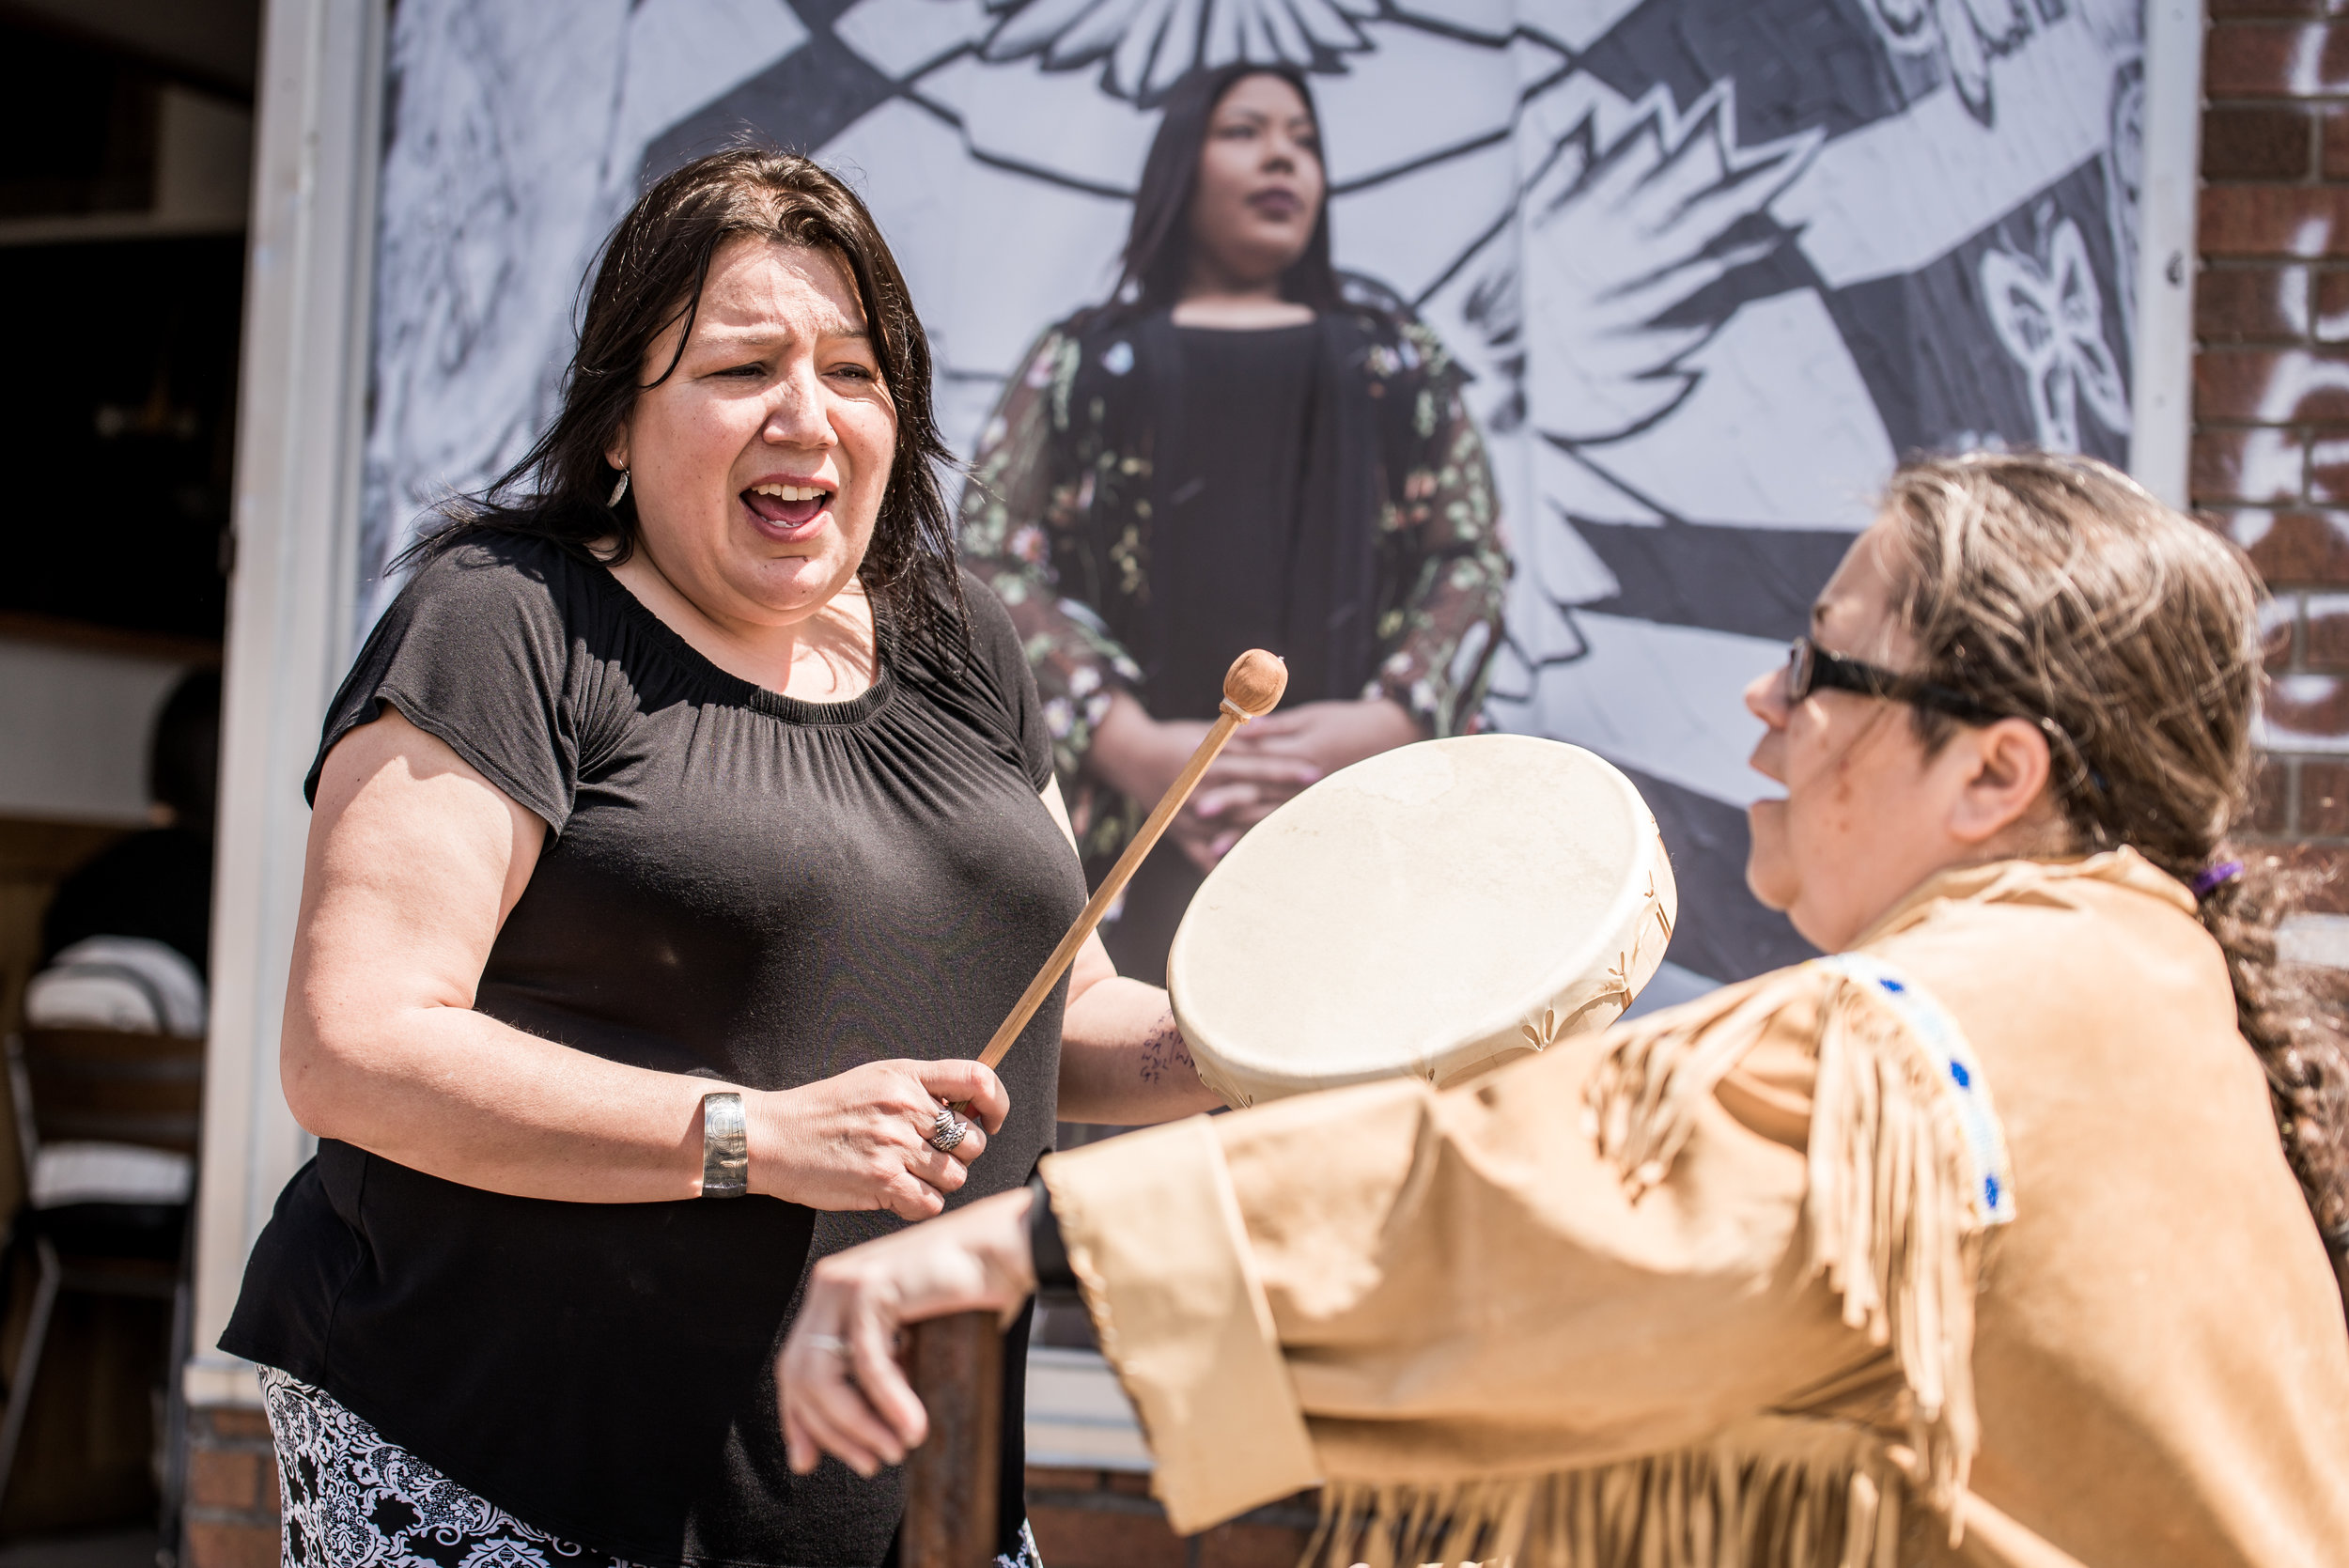 Crystal Sinclair, seen here with her hand drum, is an Indigenous Rights Activist with Idle No More Toronto, public speaker and artist.  PHOTO: Ben Marans